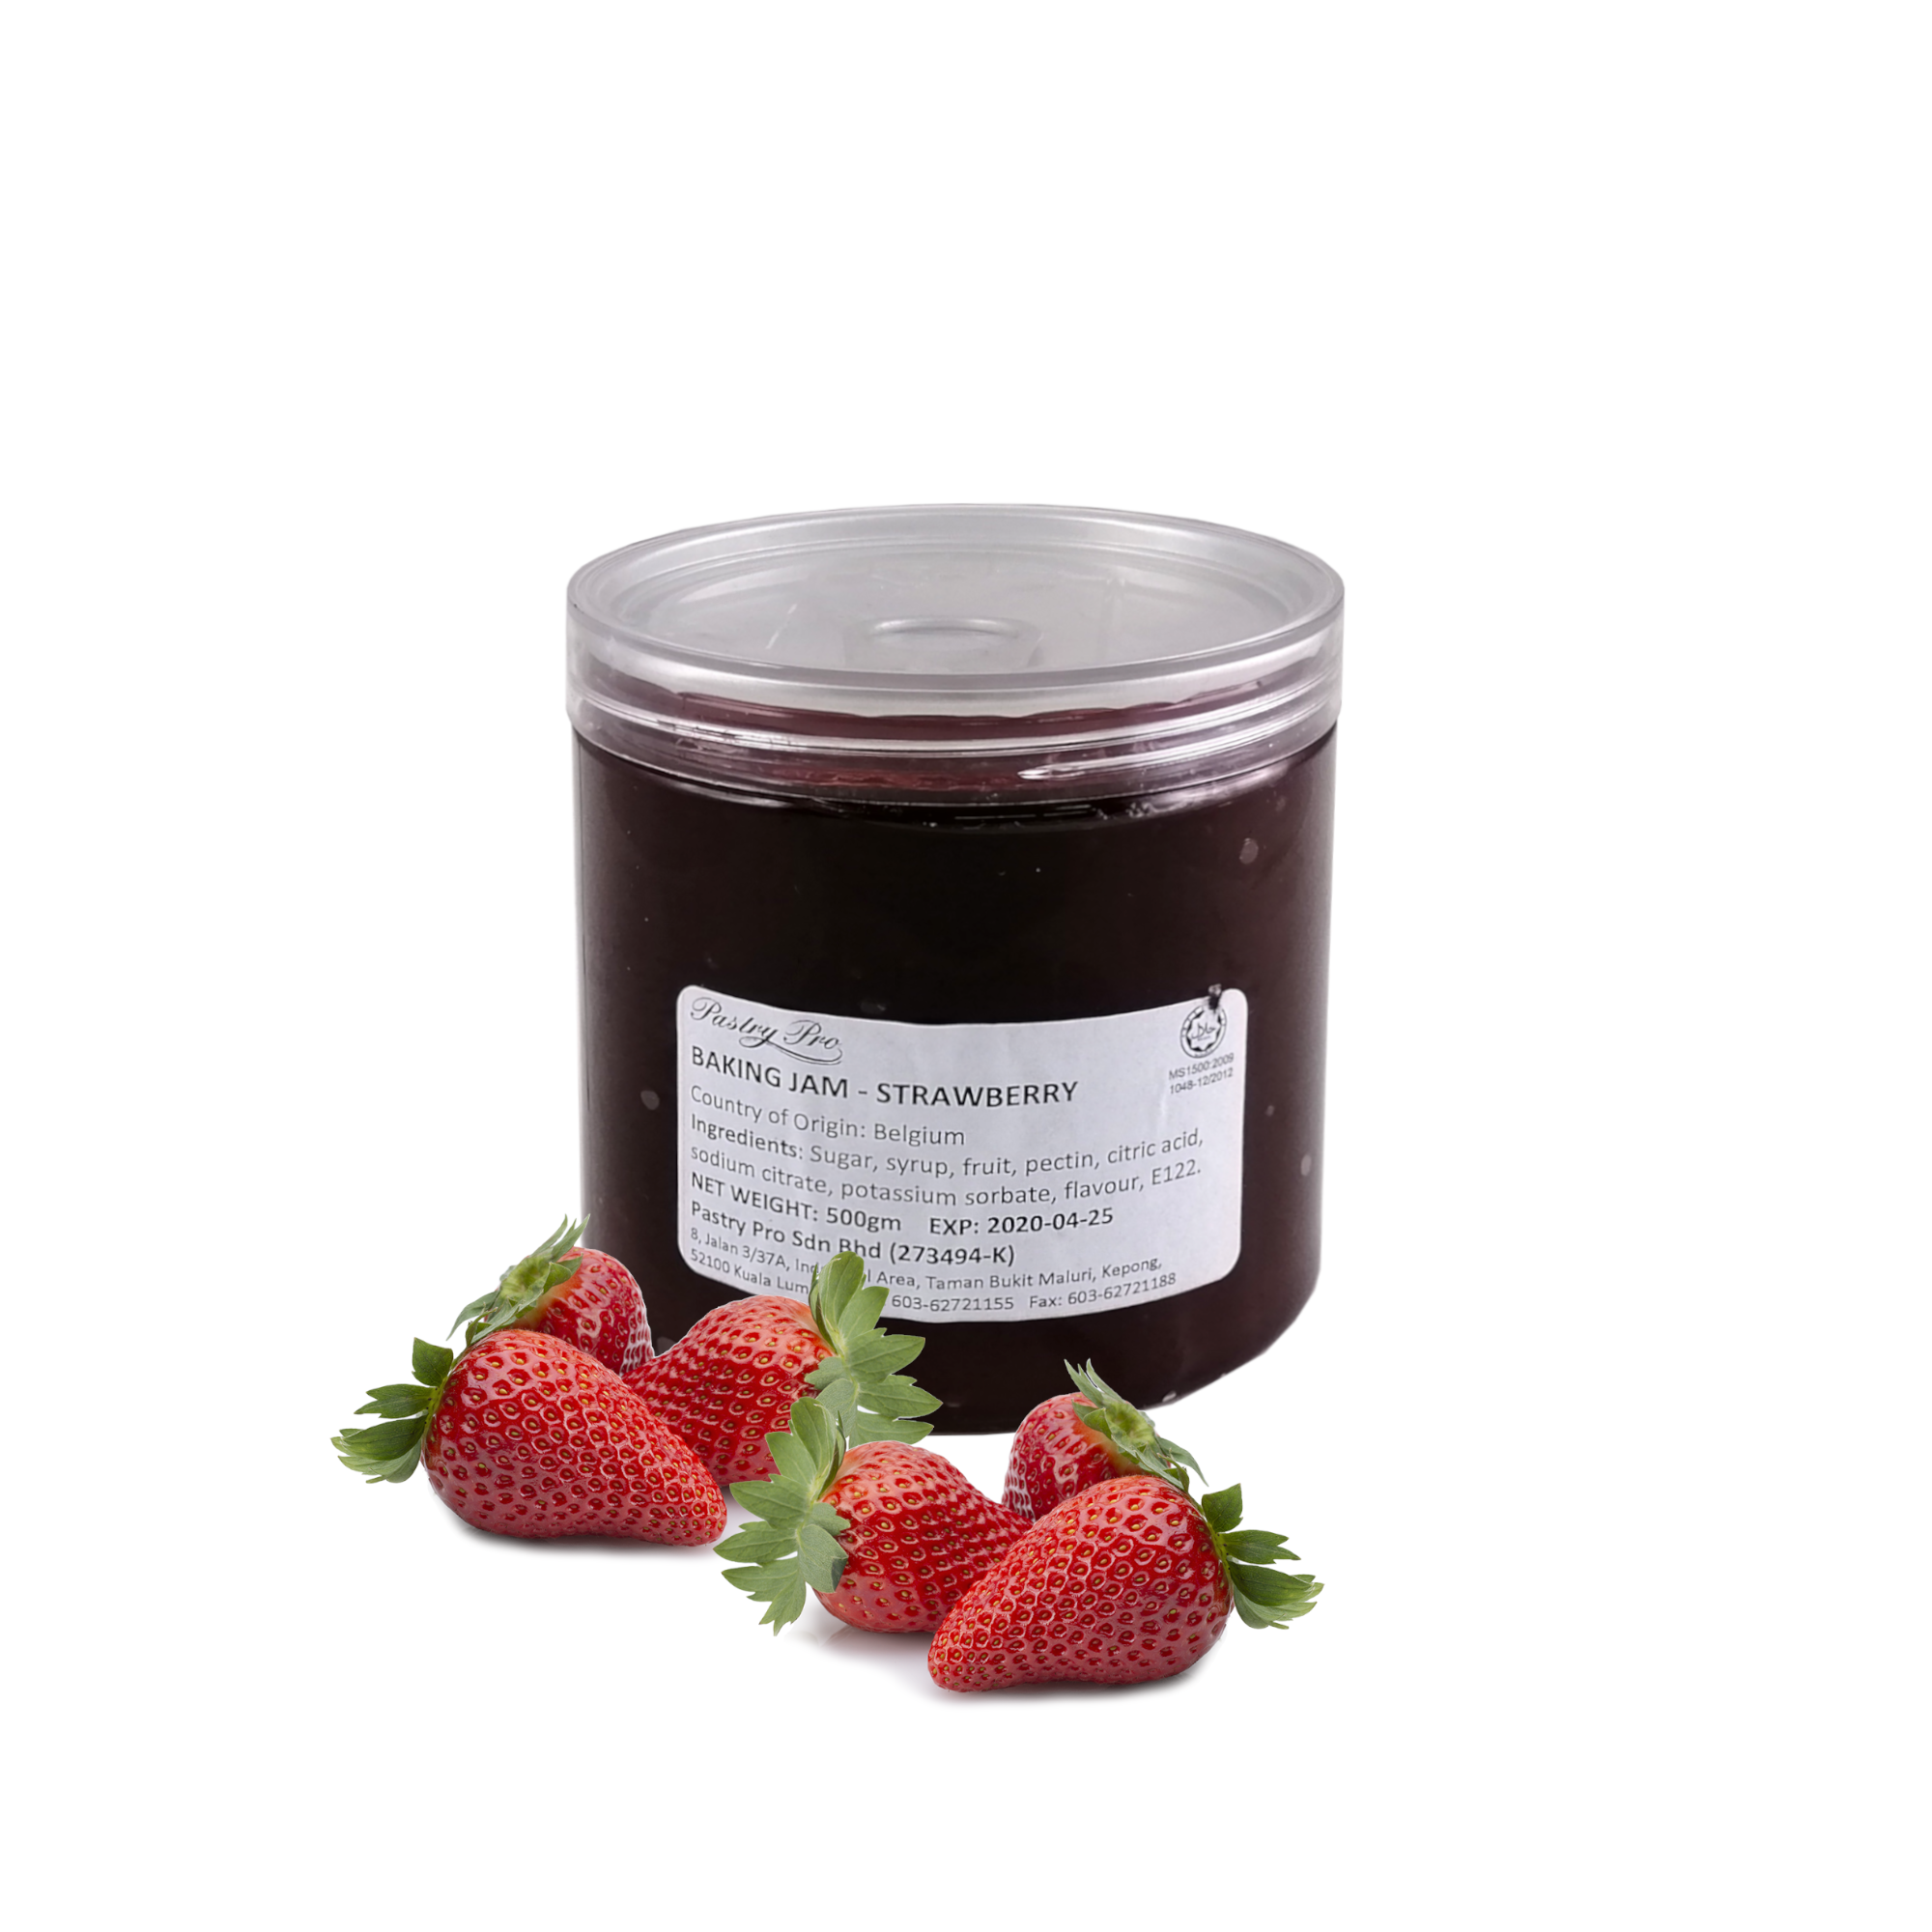 baking jam strawberry.png